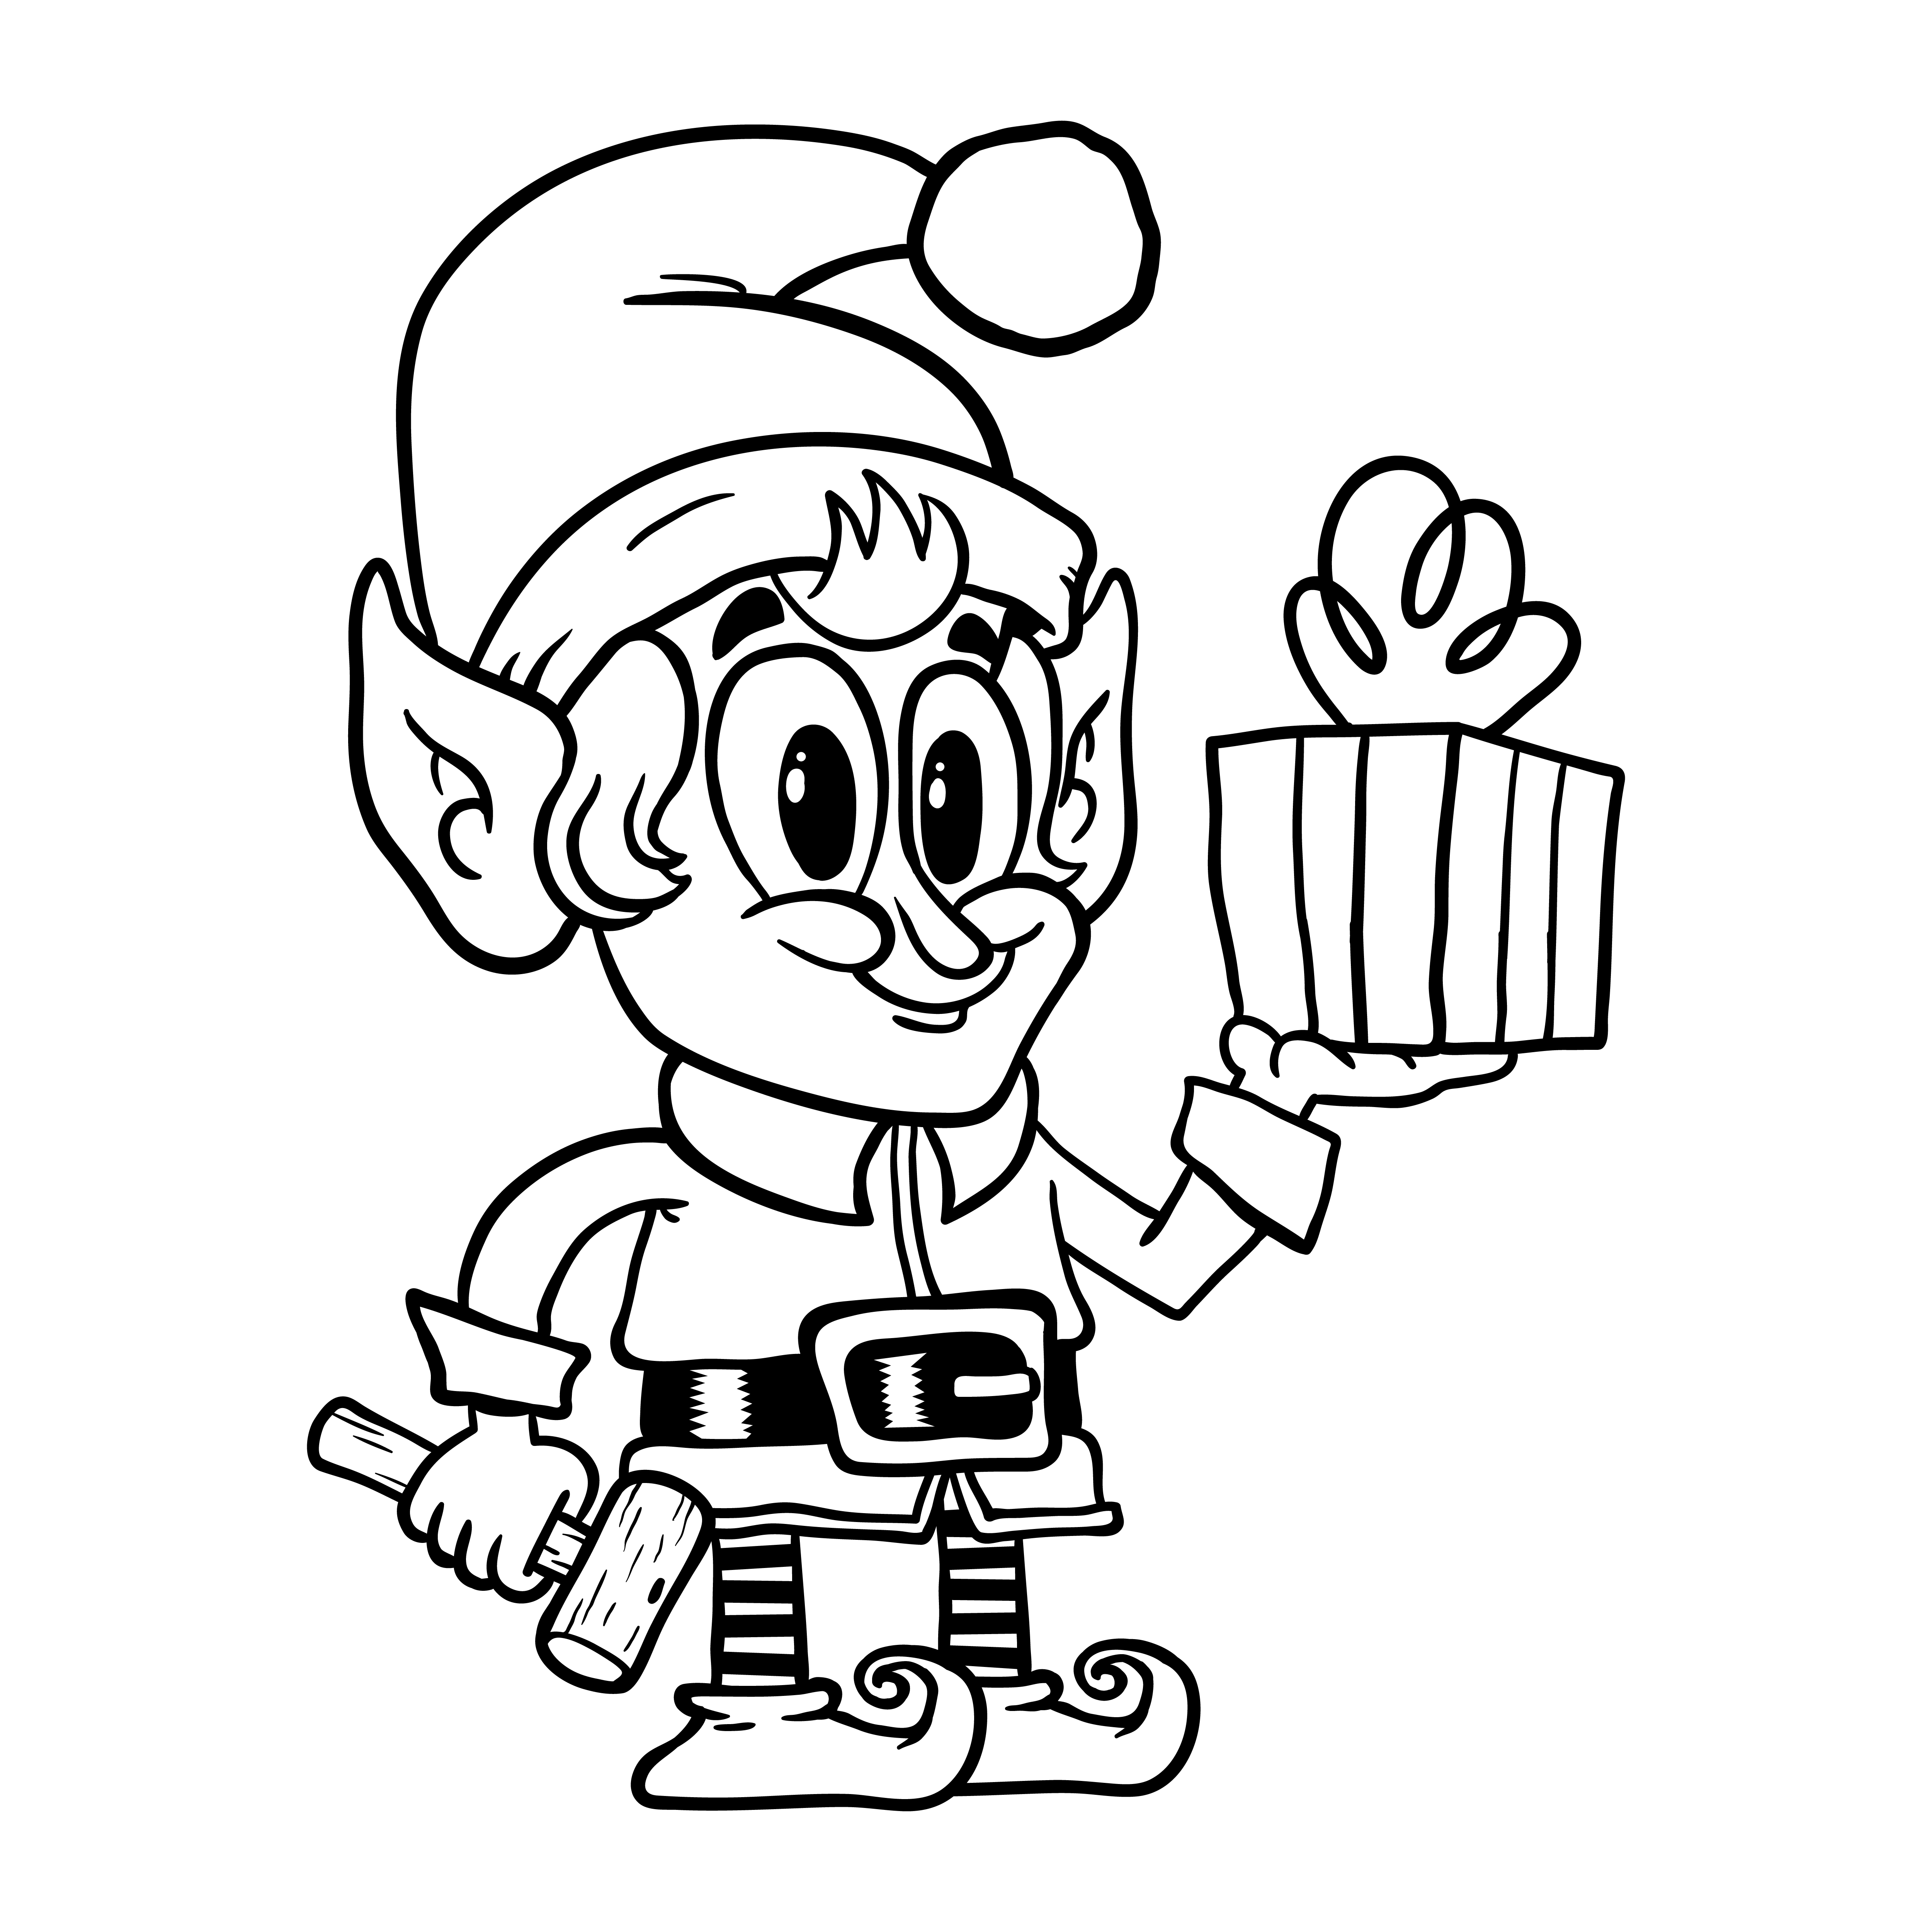 christmas elf drawings happy christmas elf stock illustration download image elf christmas drawings